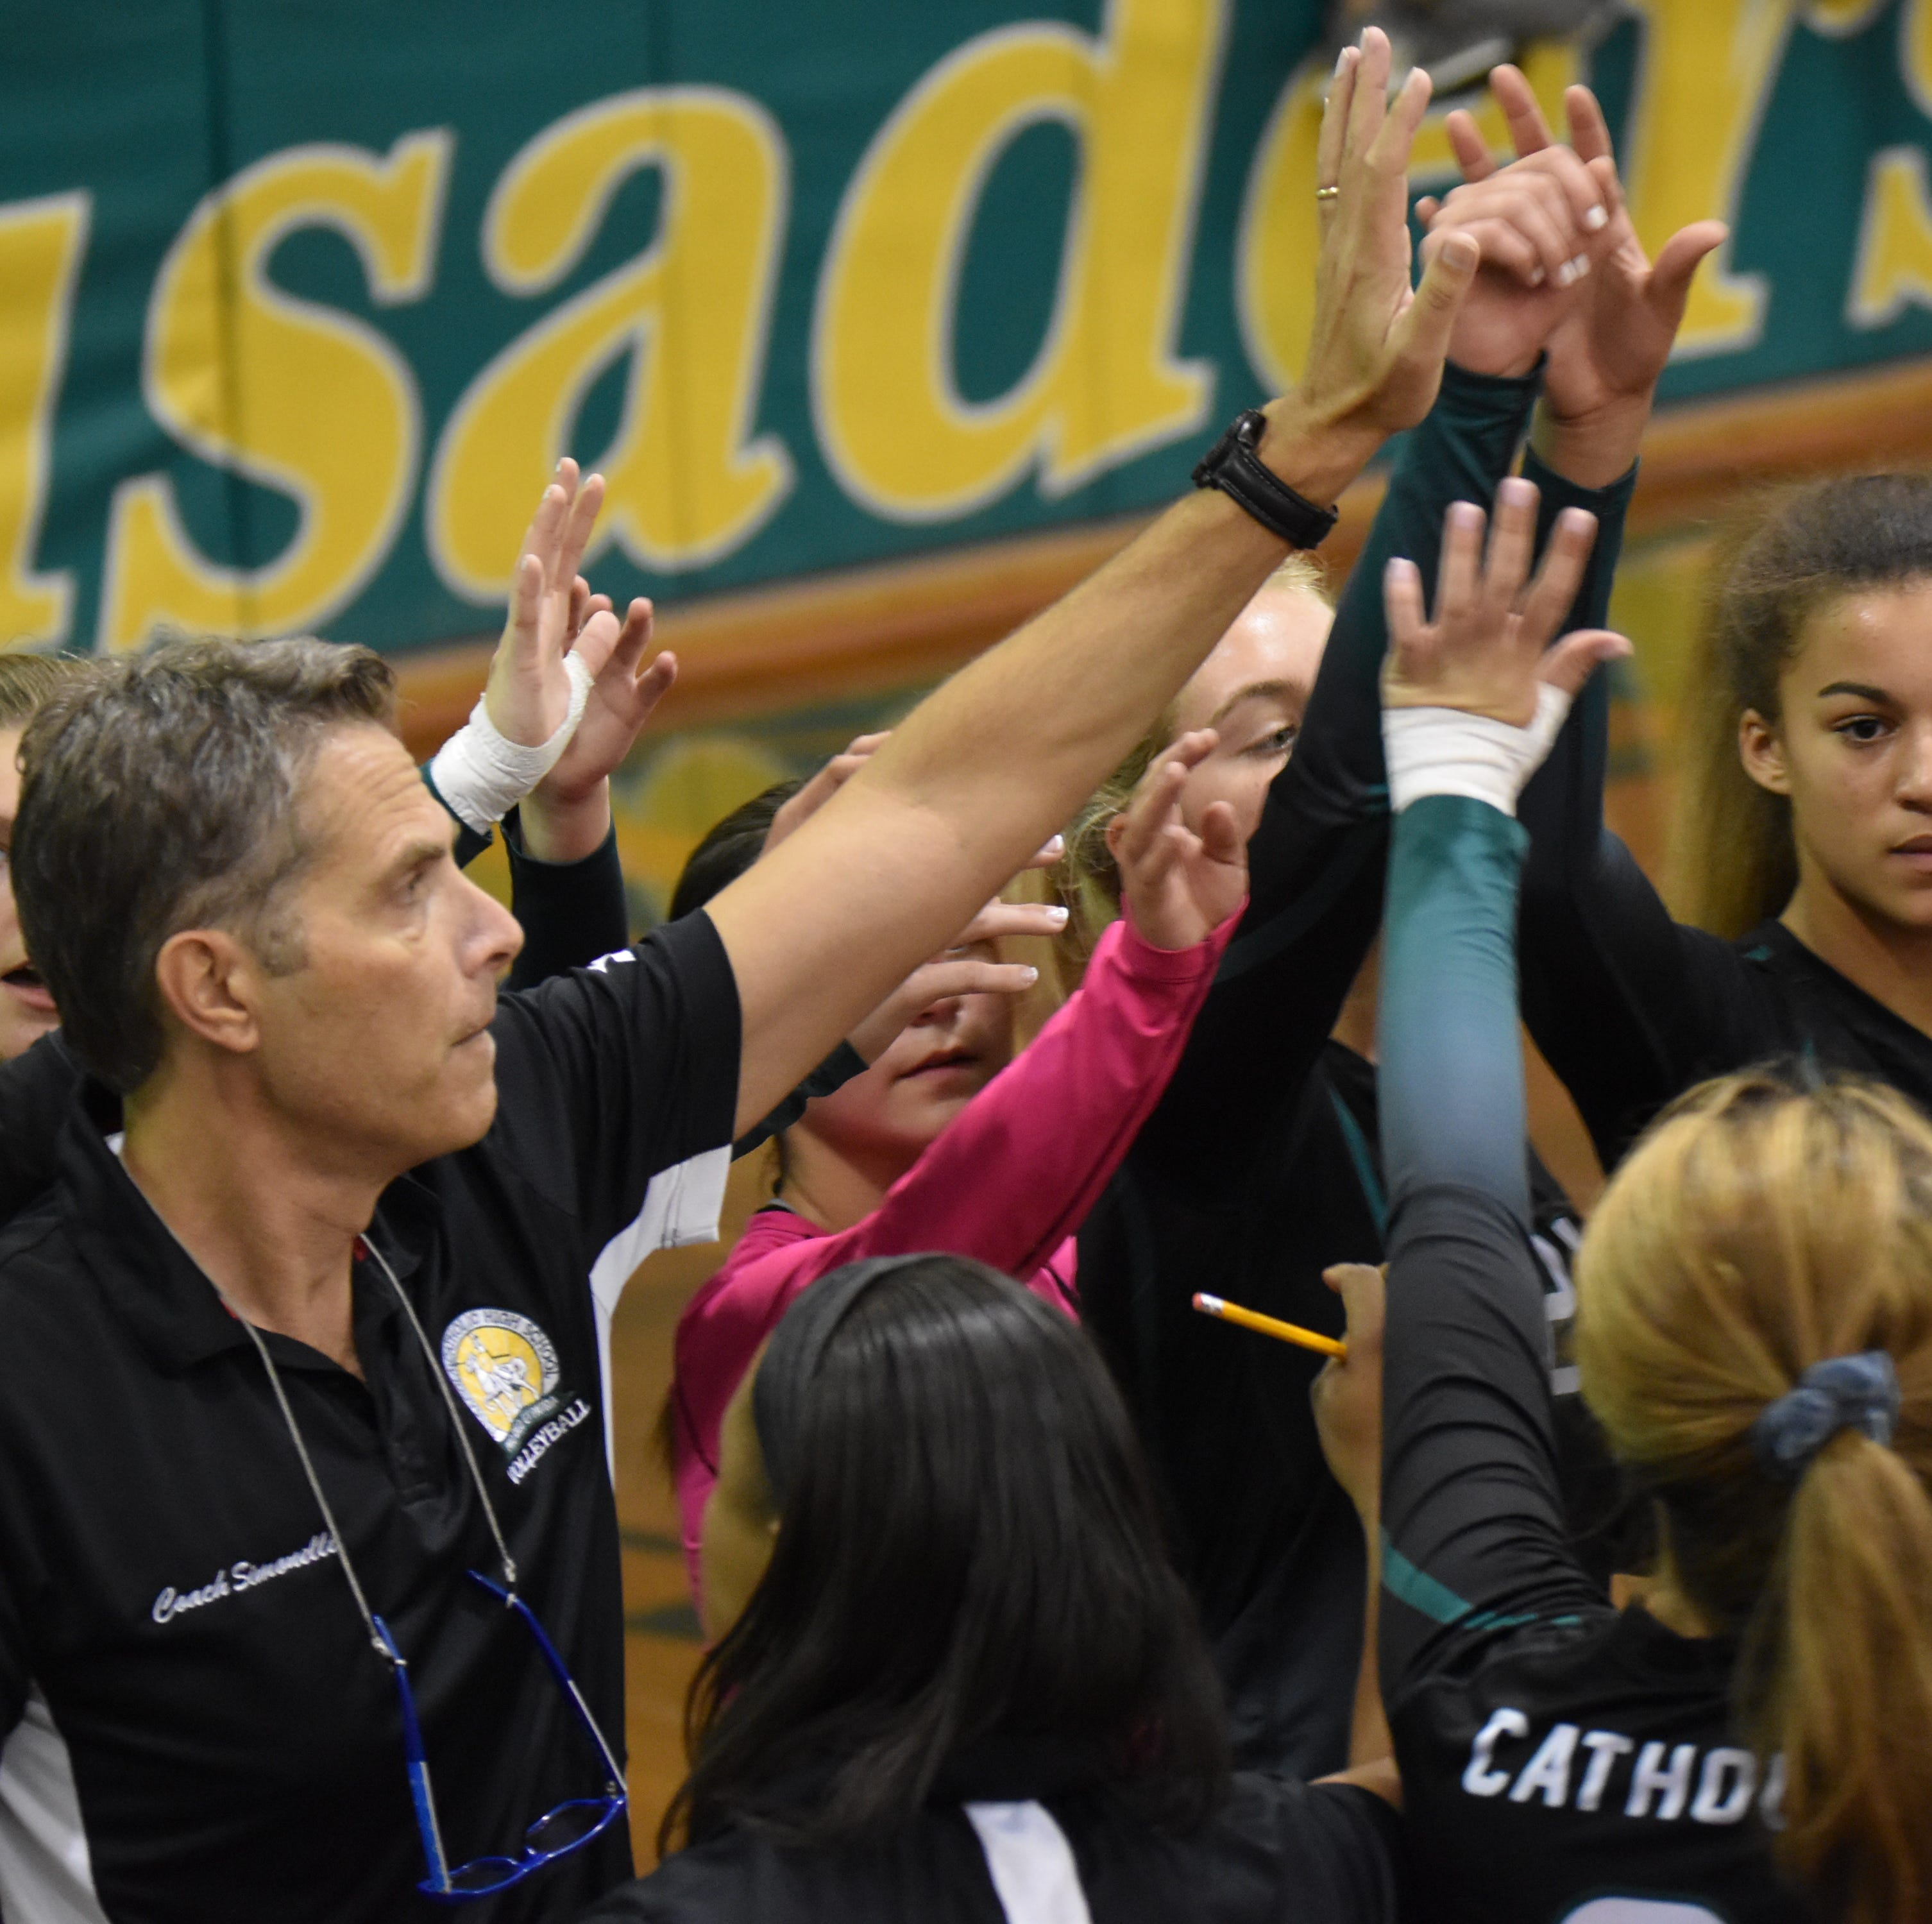 Catholic volleyball moves on in a district tourney altered by Hurricane Michael